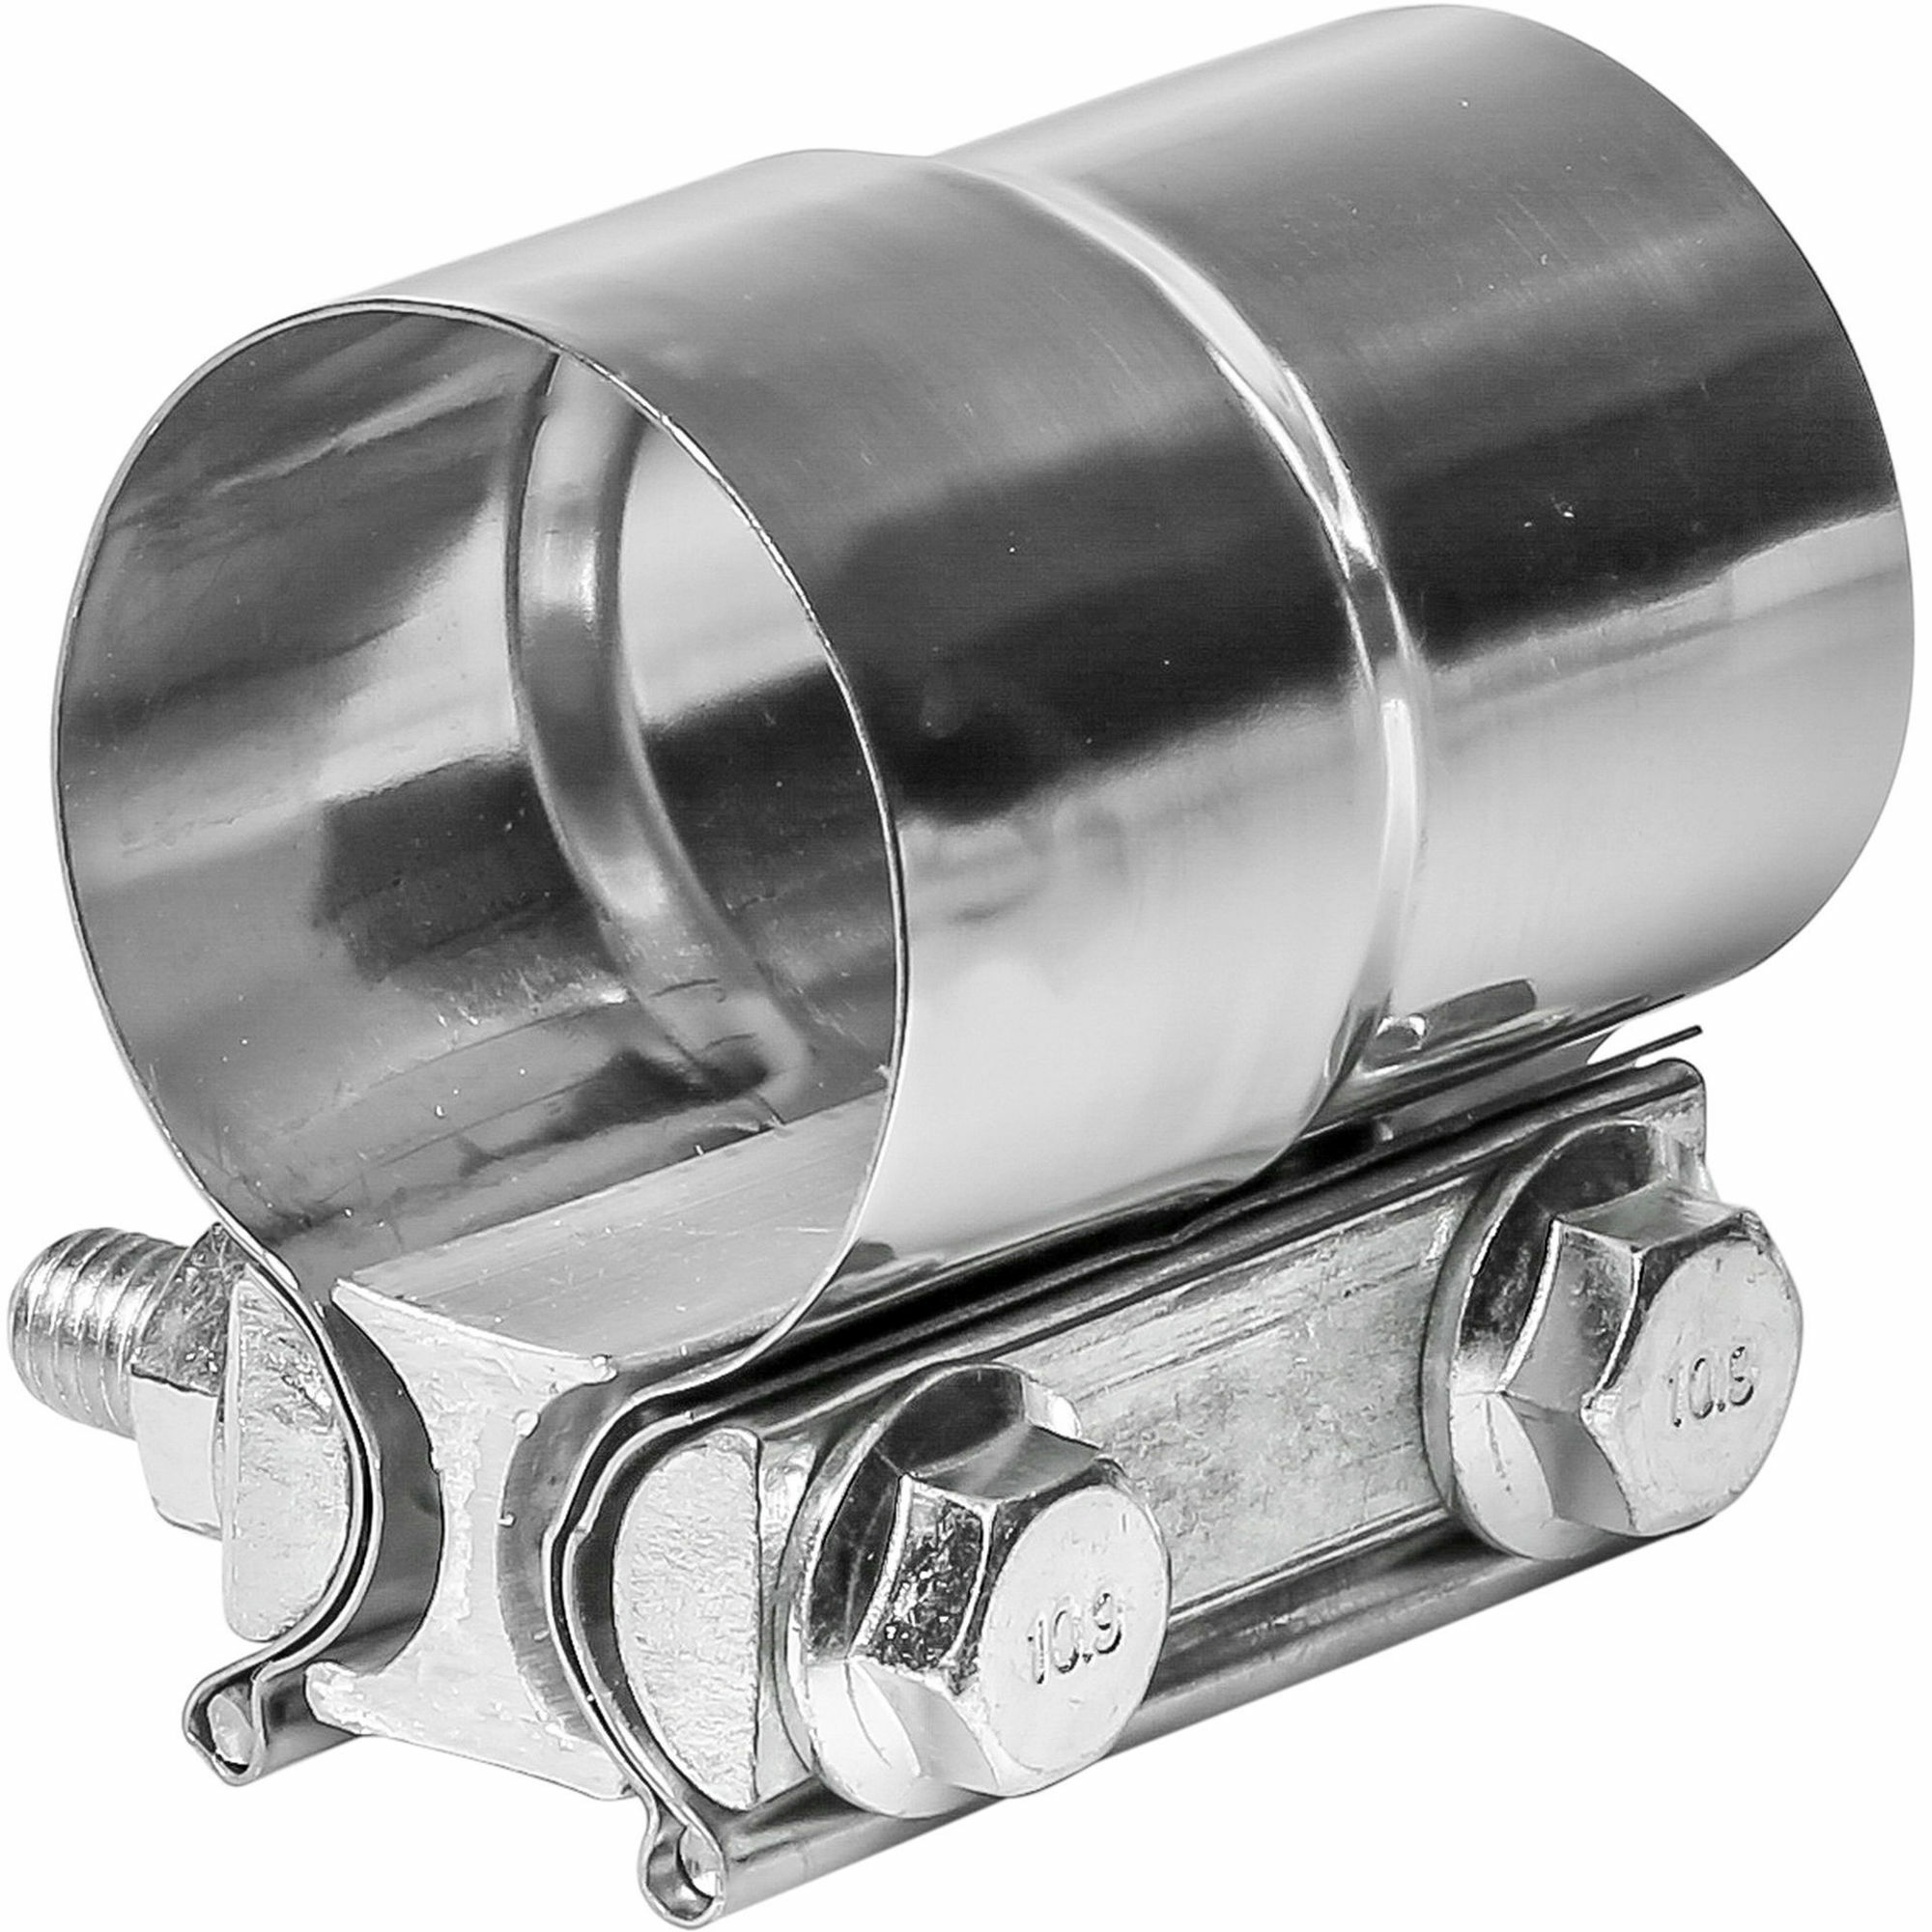 TOTALFLOW TF-J56 Lap Joint Exhaust Muffler Clamp Band | 2 Inch